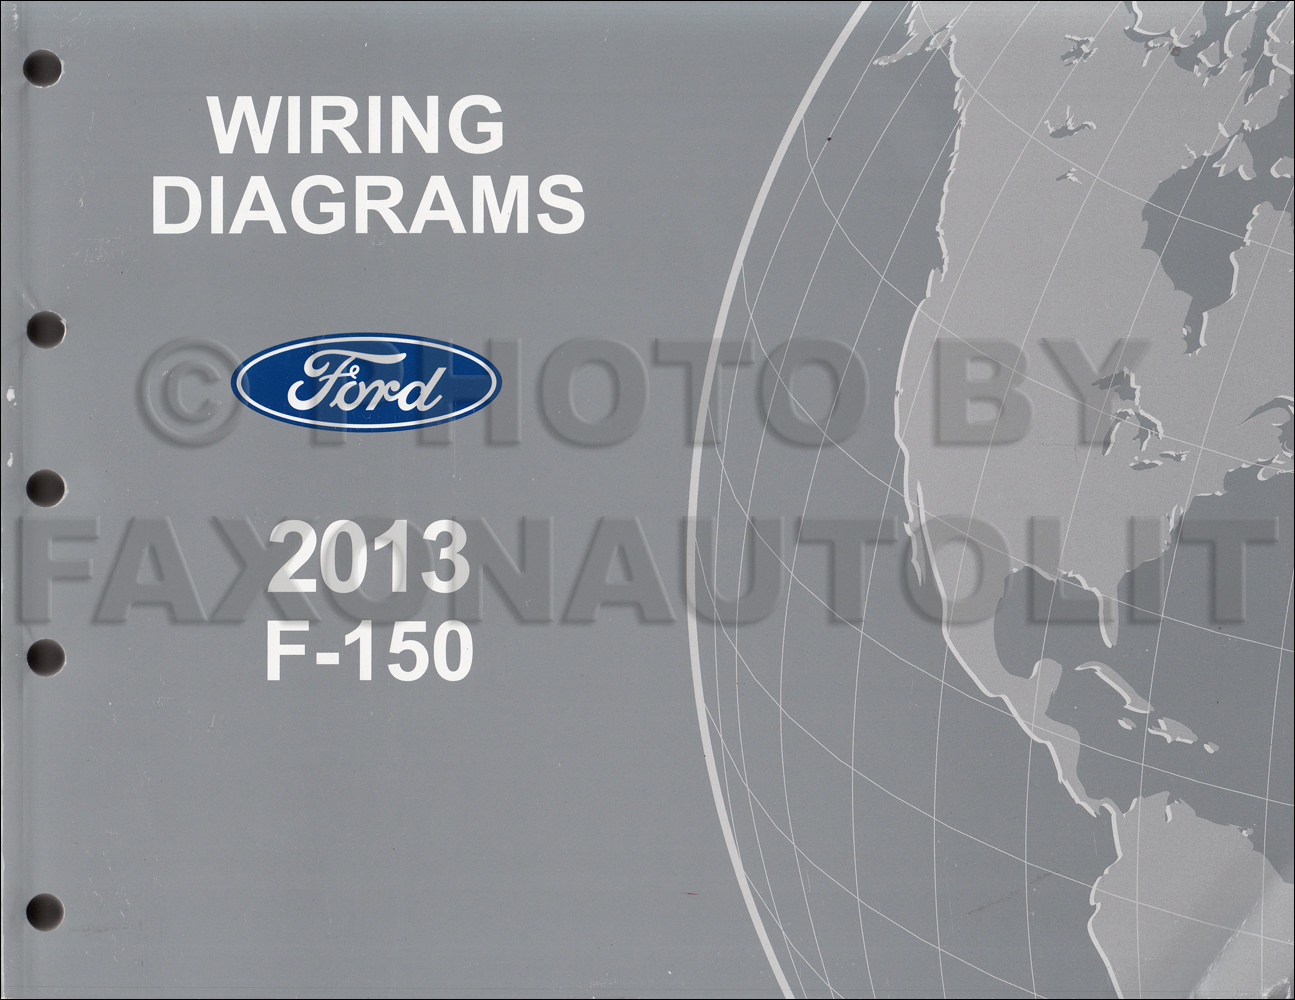 2013 F 150 Wiring Diagram Circuit Schematic Airbag 2009 Fusion Ford Manual Original Ram 1500